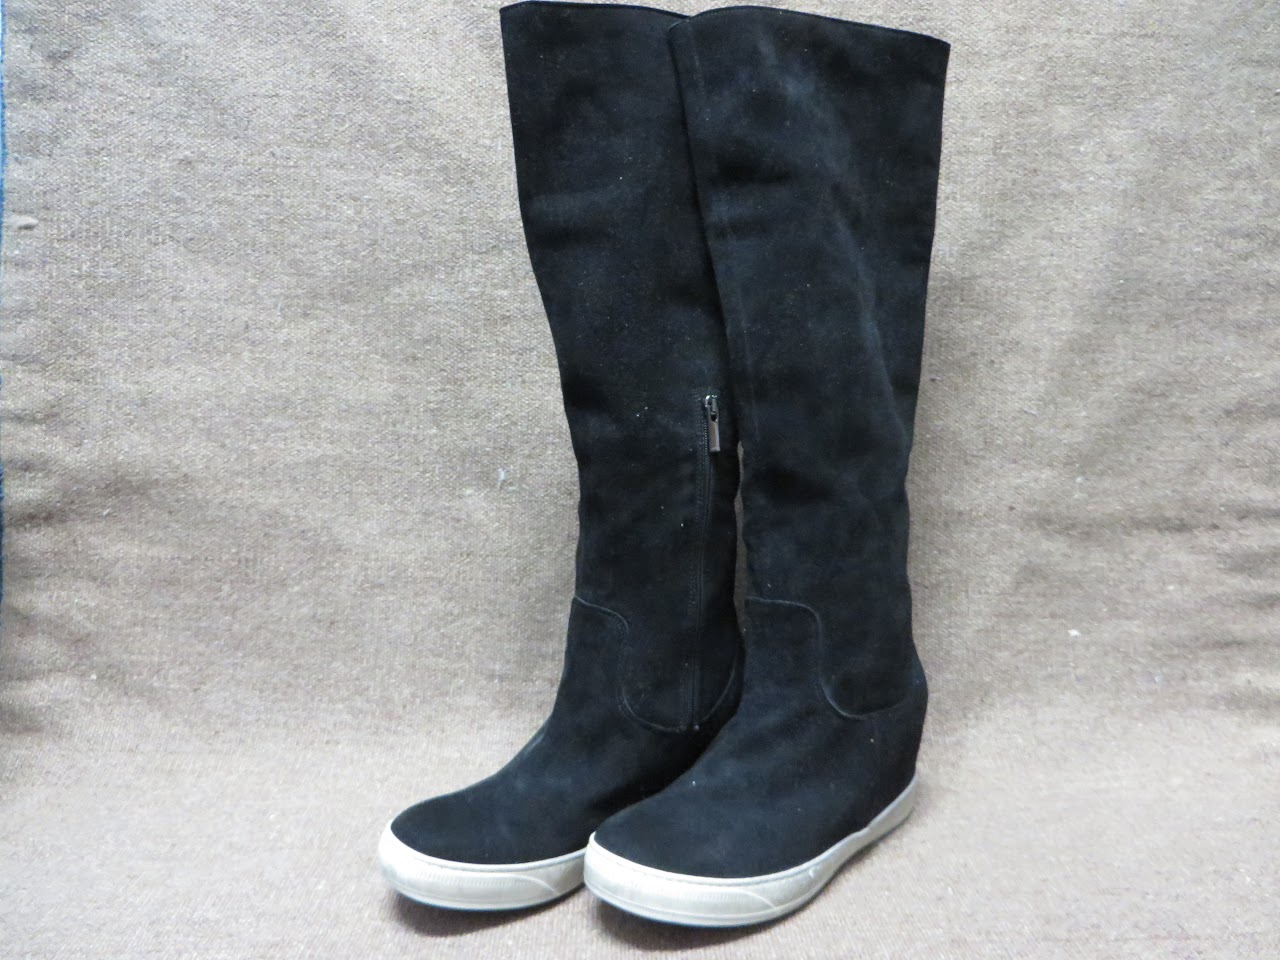 Fred Seigal Wedge Boots